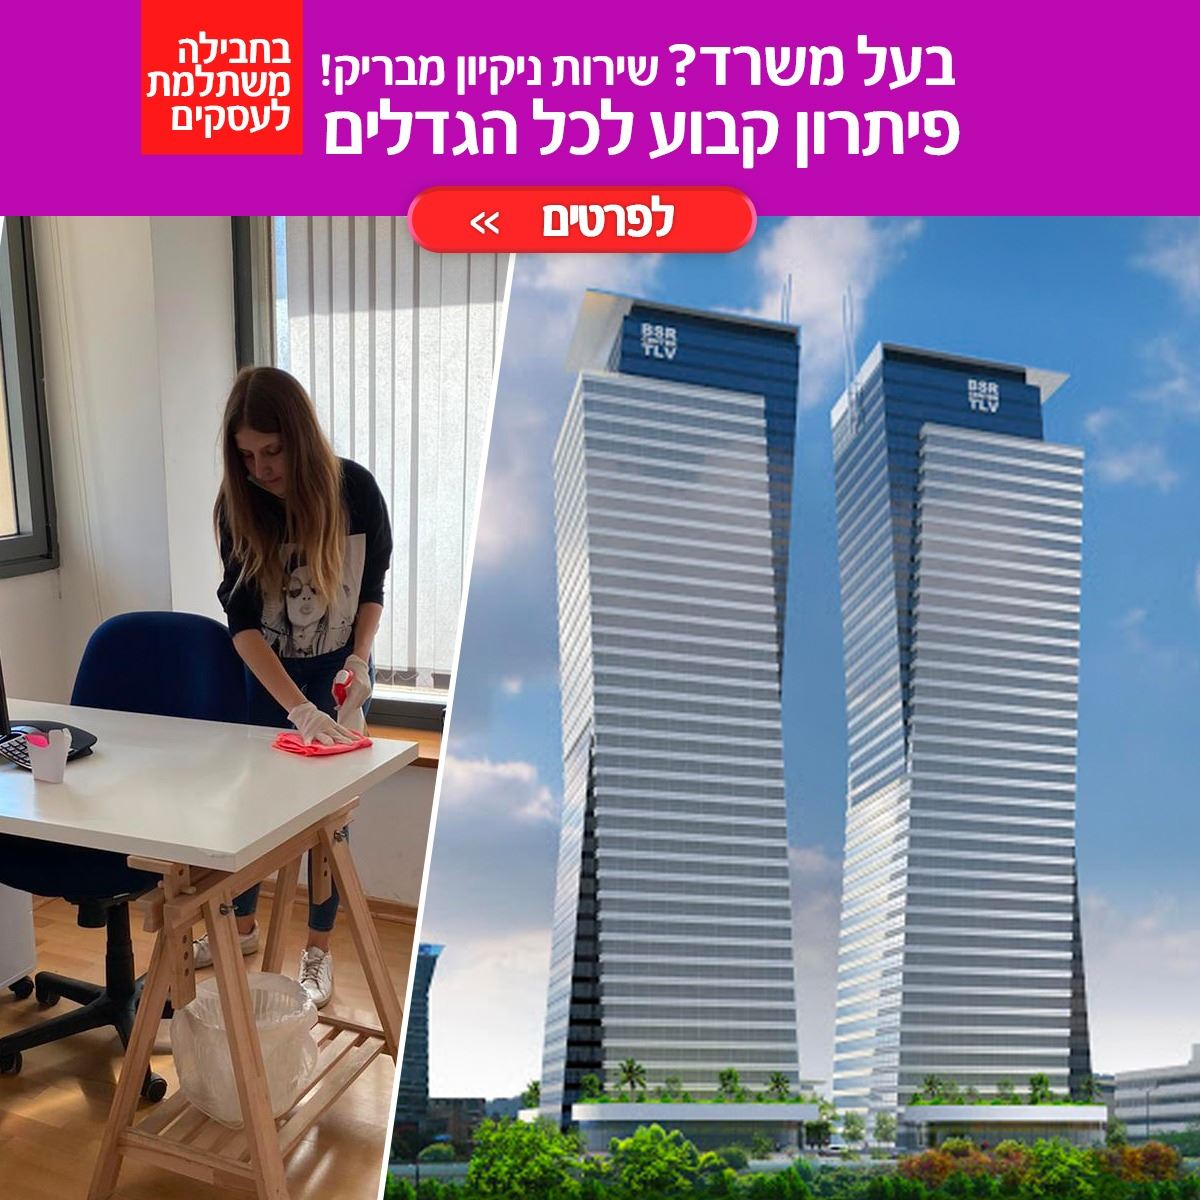 https://www.lermont.co.il/Uploads/ראשי/whatsapp image 2020-05-24 at 11.30.24.jpeg